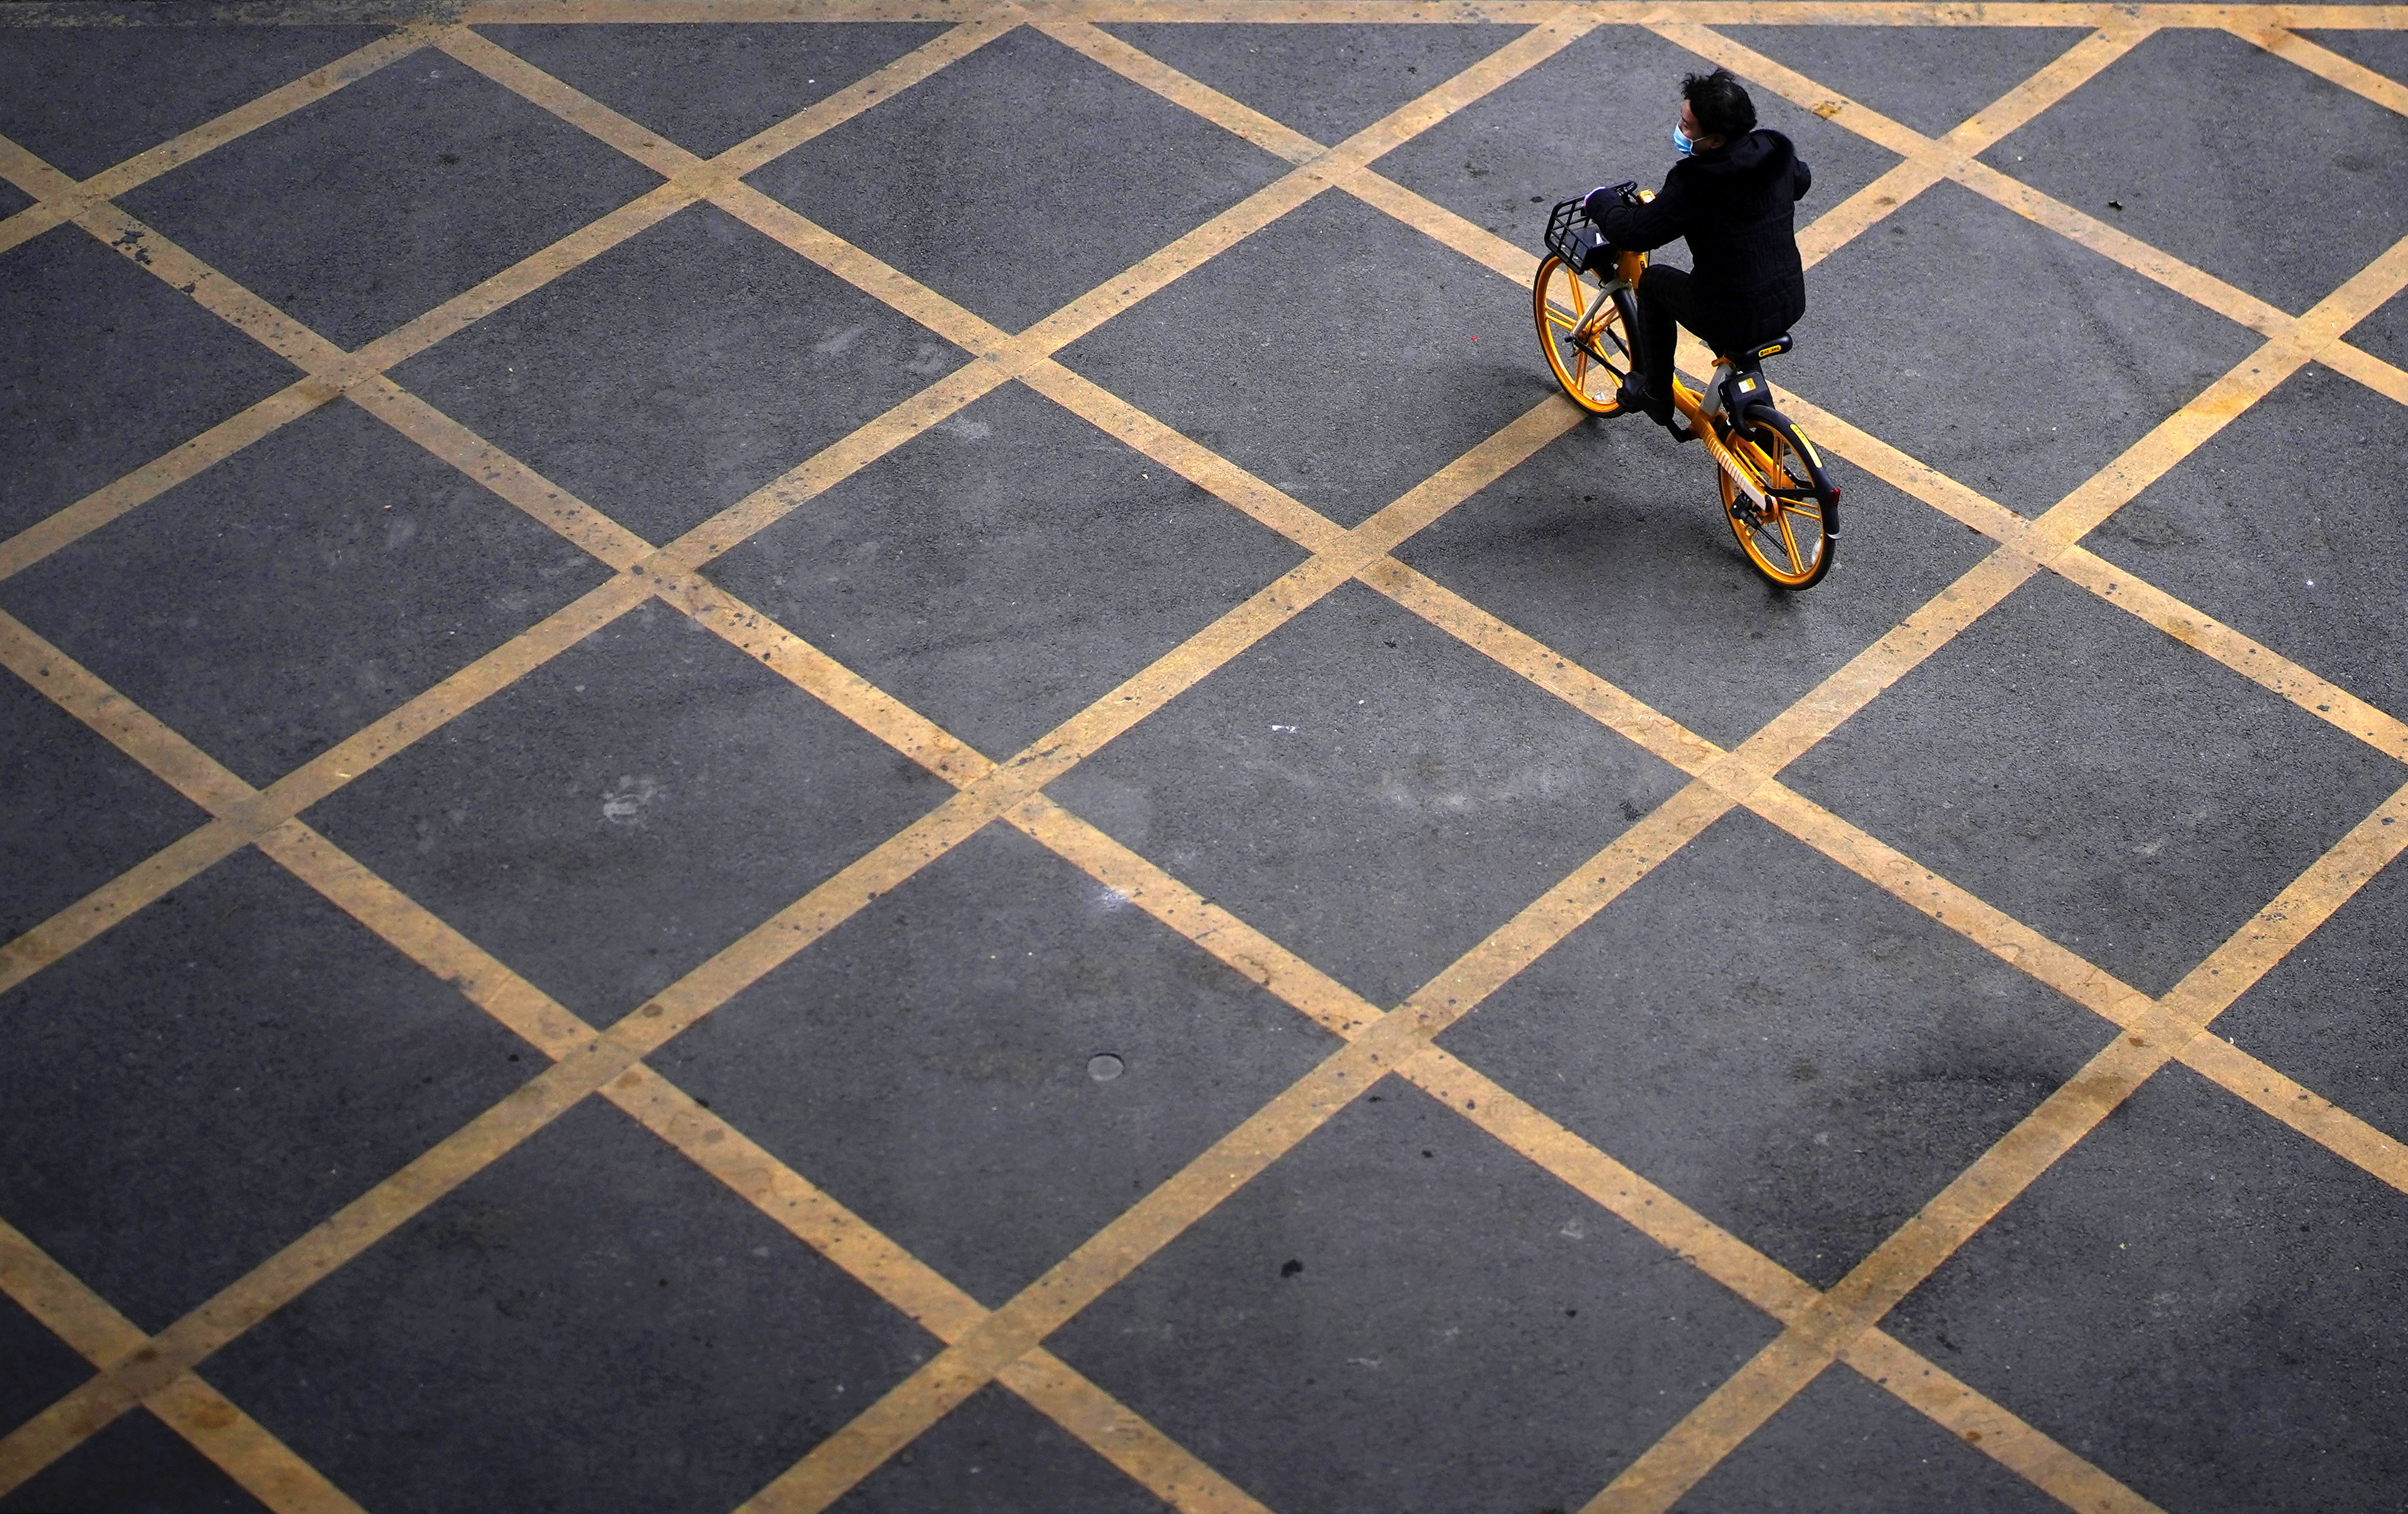 A person wearing a mask rides a bicycle of bike-sharing service on a street, almost a year after the start of the coronavirus disease (COVID-19) outbreak, in Wuhan, Hubei province, China December 17, 2020. REUTERS/Aly Song TPX IMAGES OF THE DAY